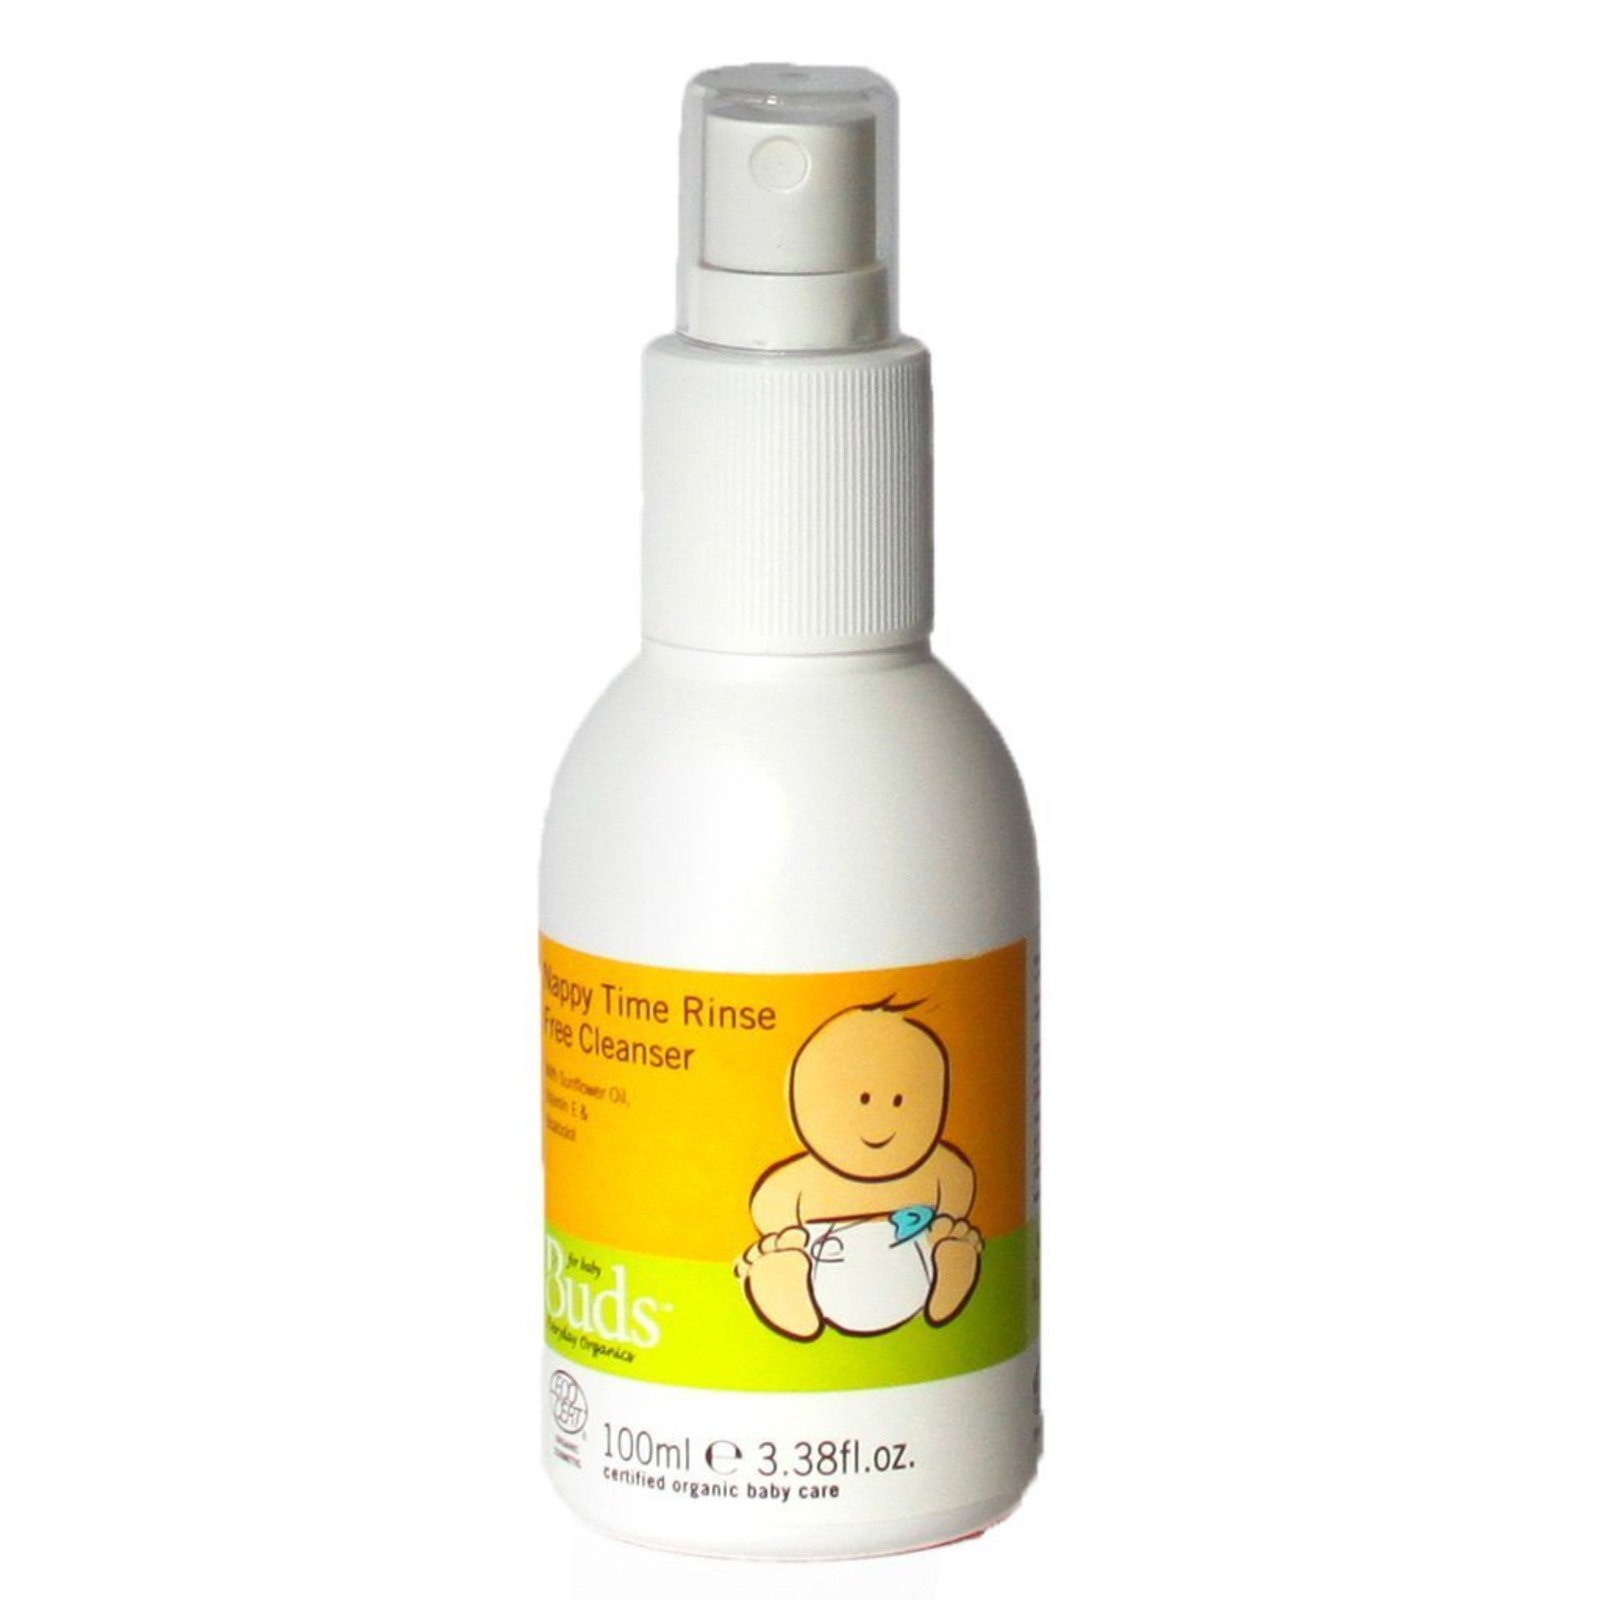 Buds Organics BEO Nappy Time Rinse-Free Cleanser